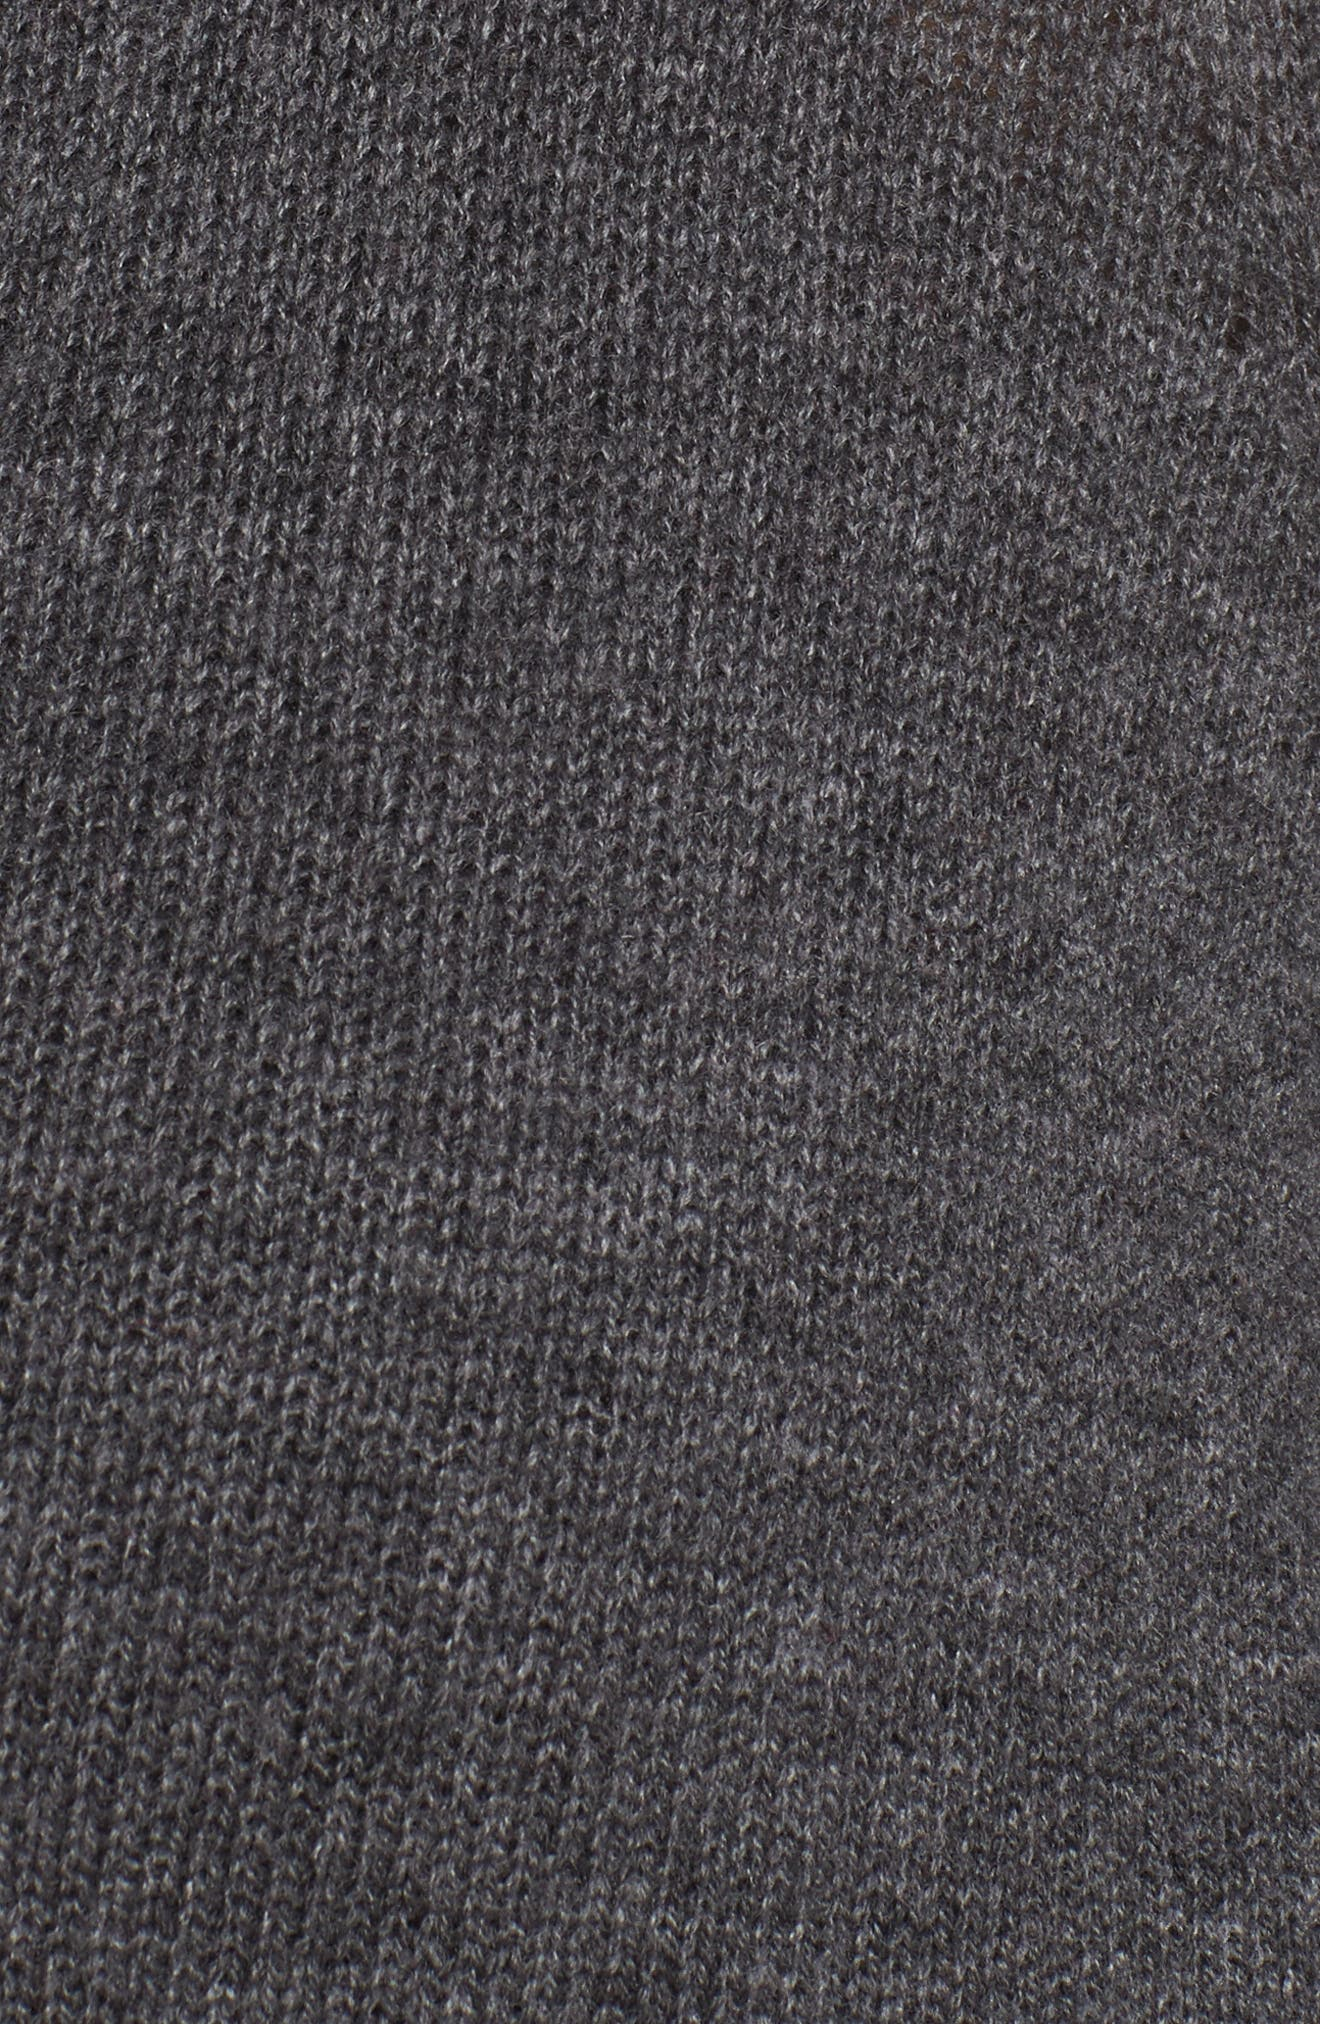 Pocket Cardigan,                             Alternate thumbnail 5, color,                             Grey Charcoal Heather